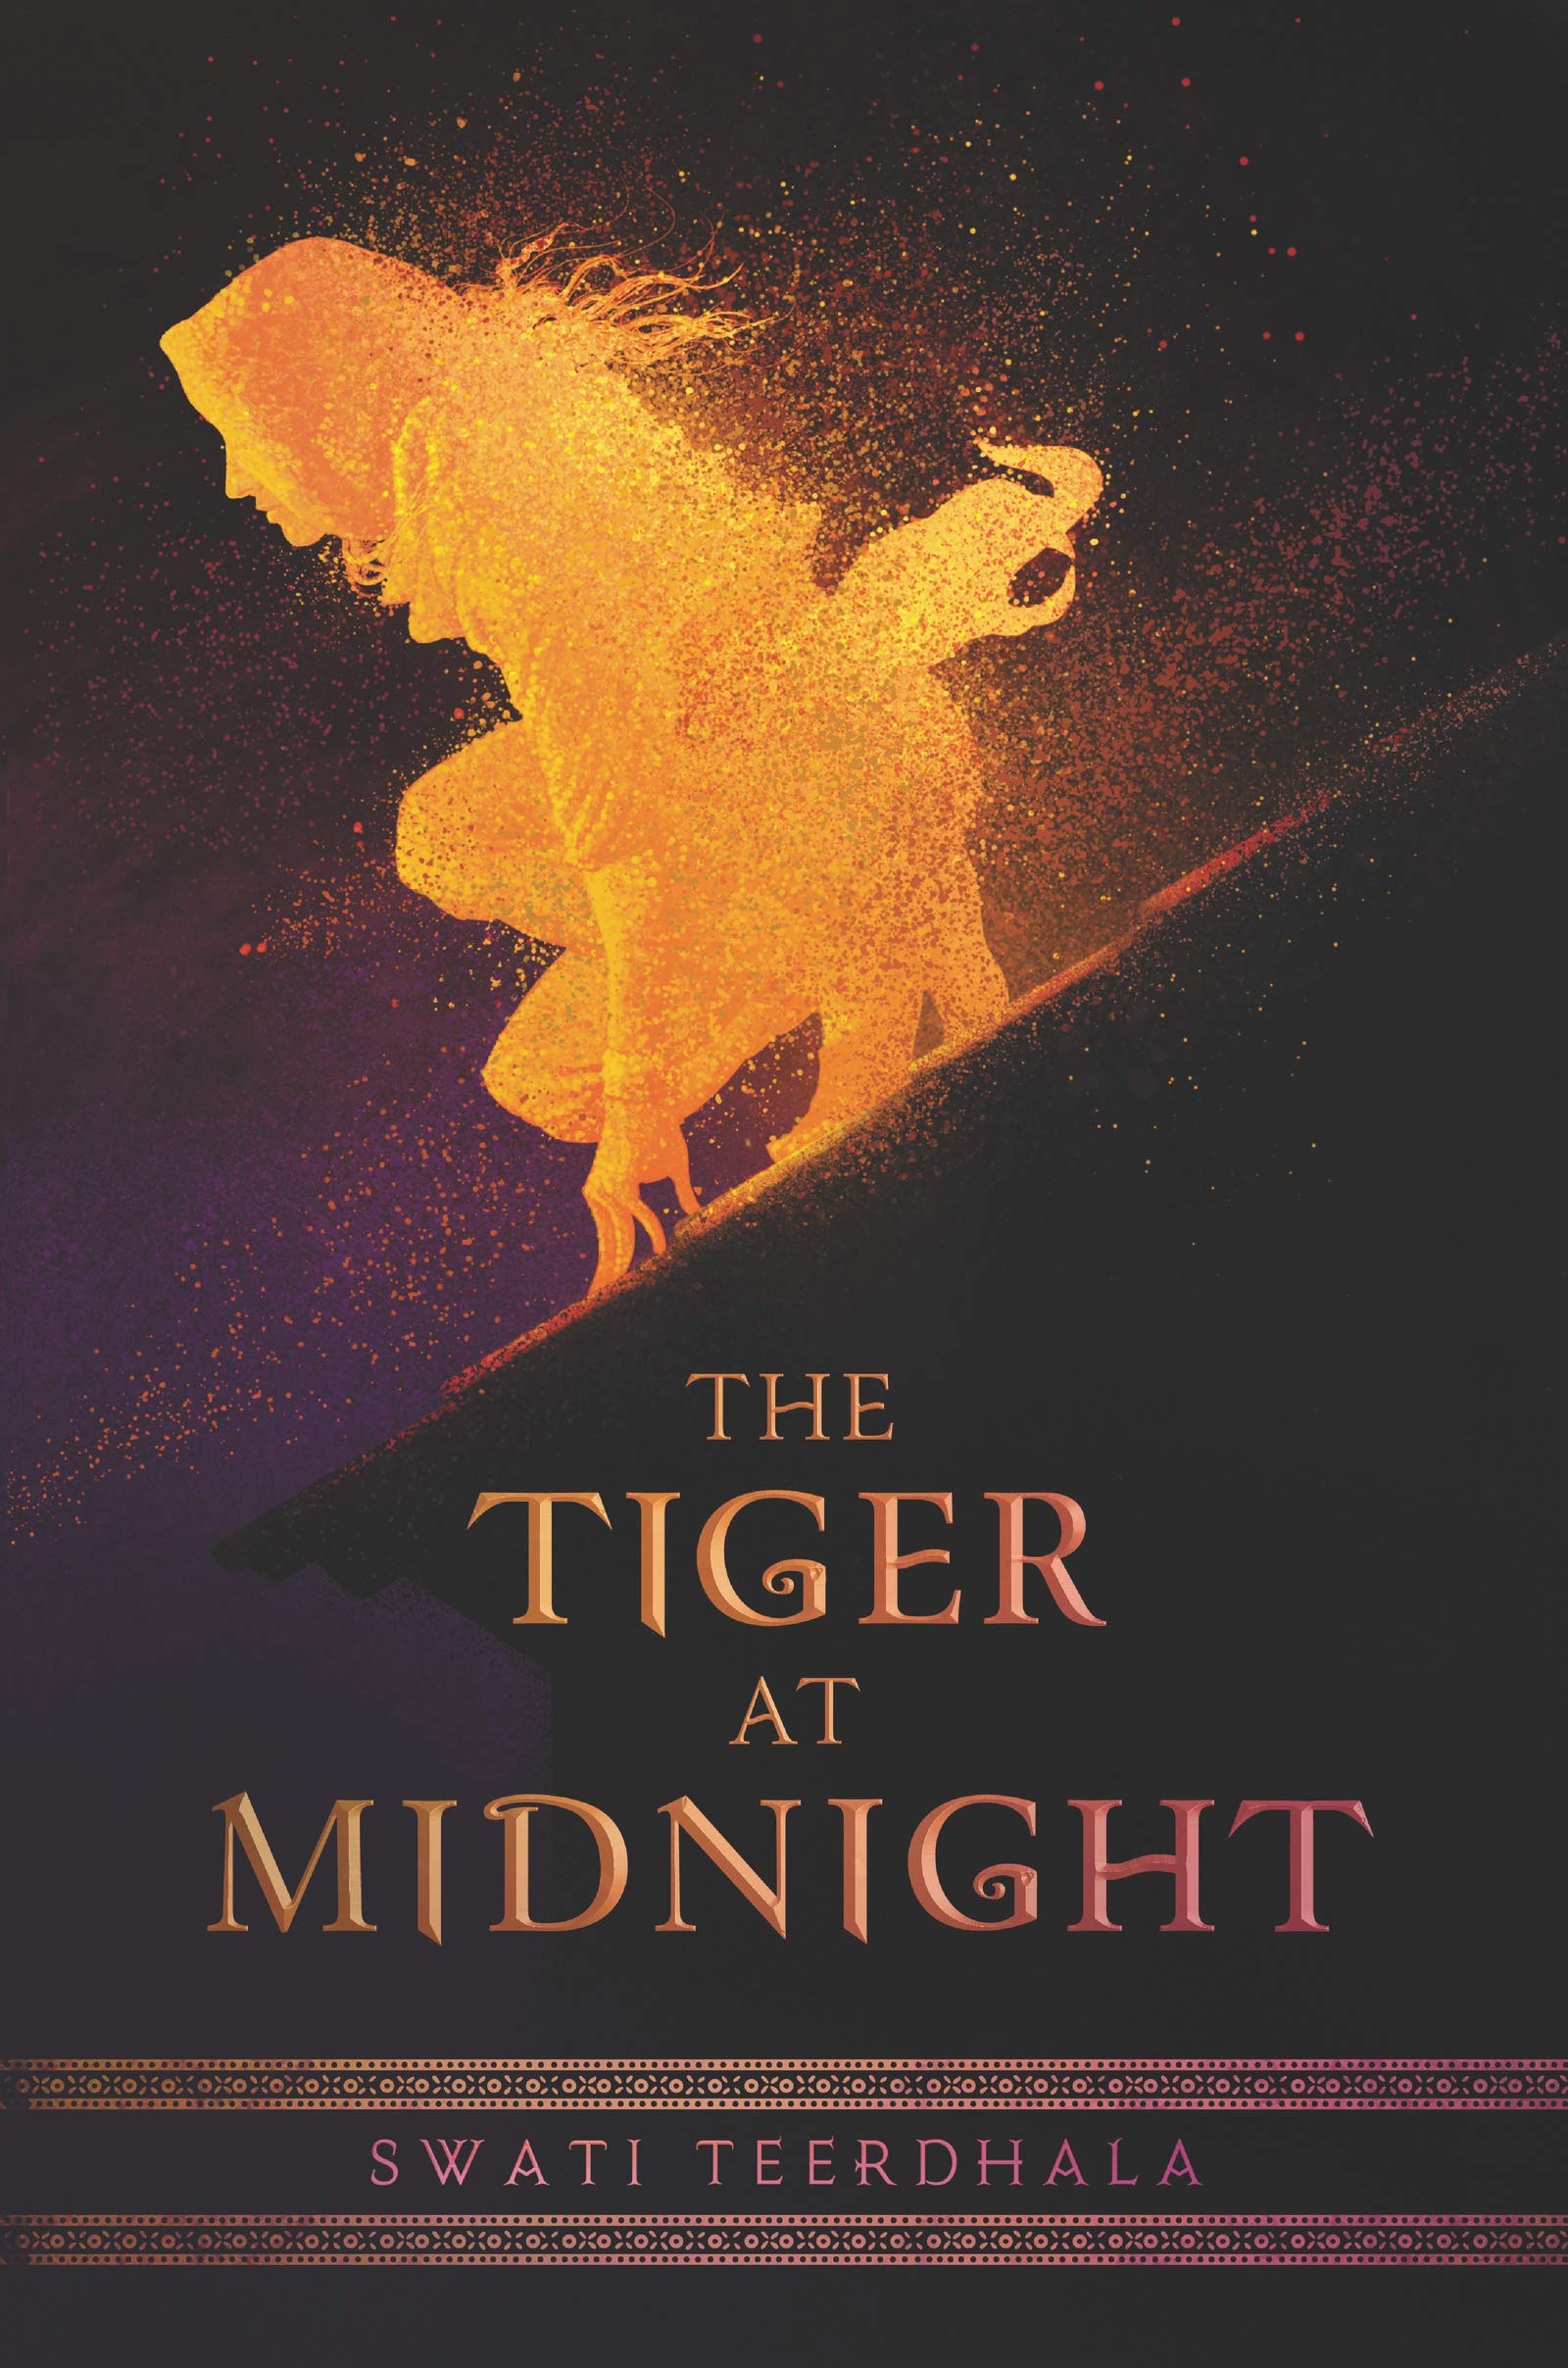 Amazon.com: The Tiger at Midnight (9780062869210): Teerdhala ...